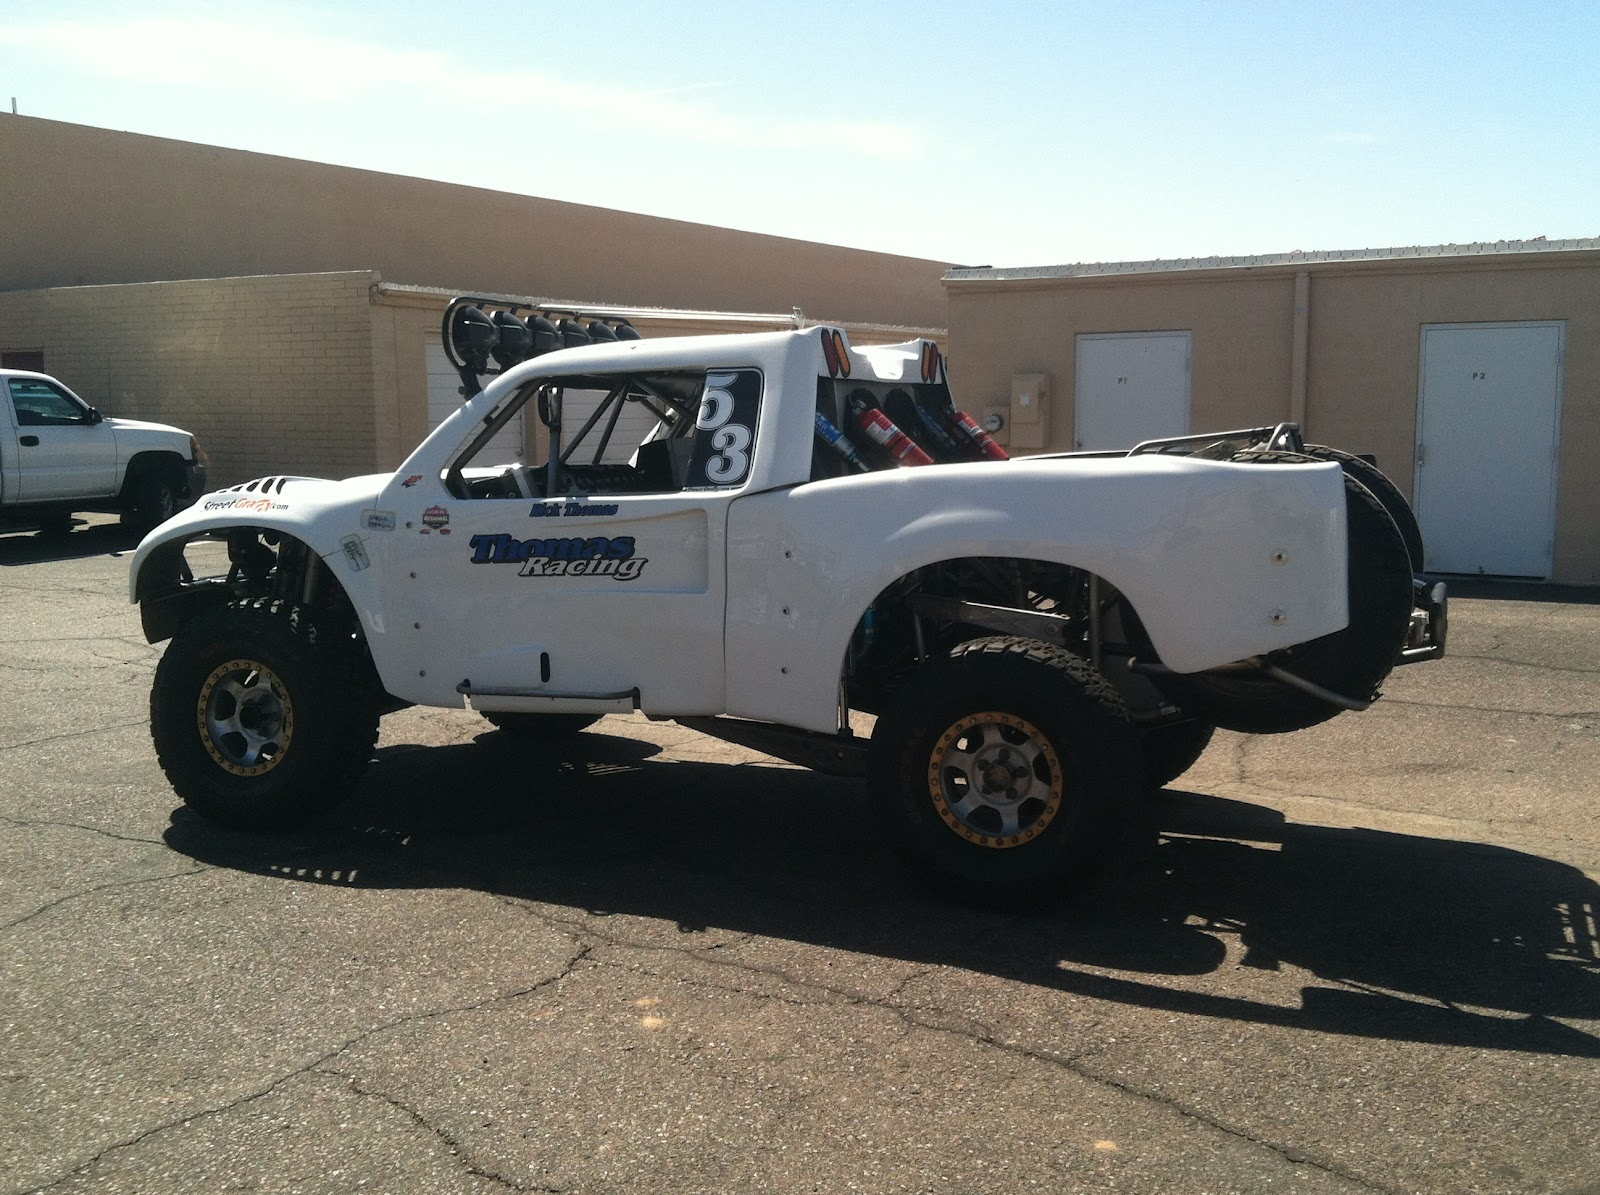 Trophy Truck For Sale >> Trophy Truck For Sale